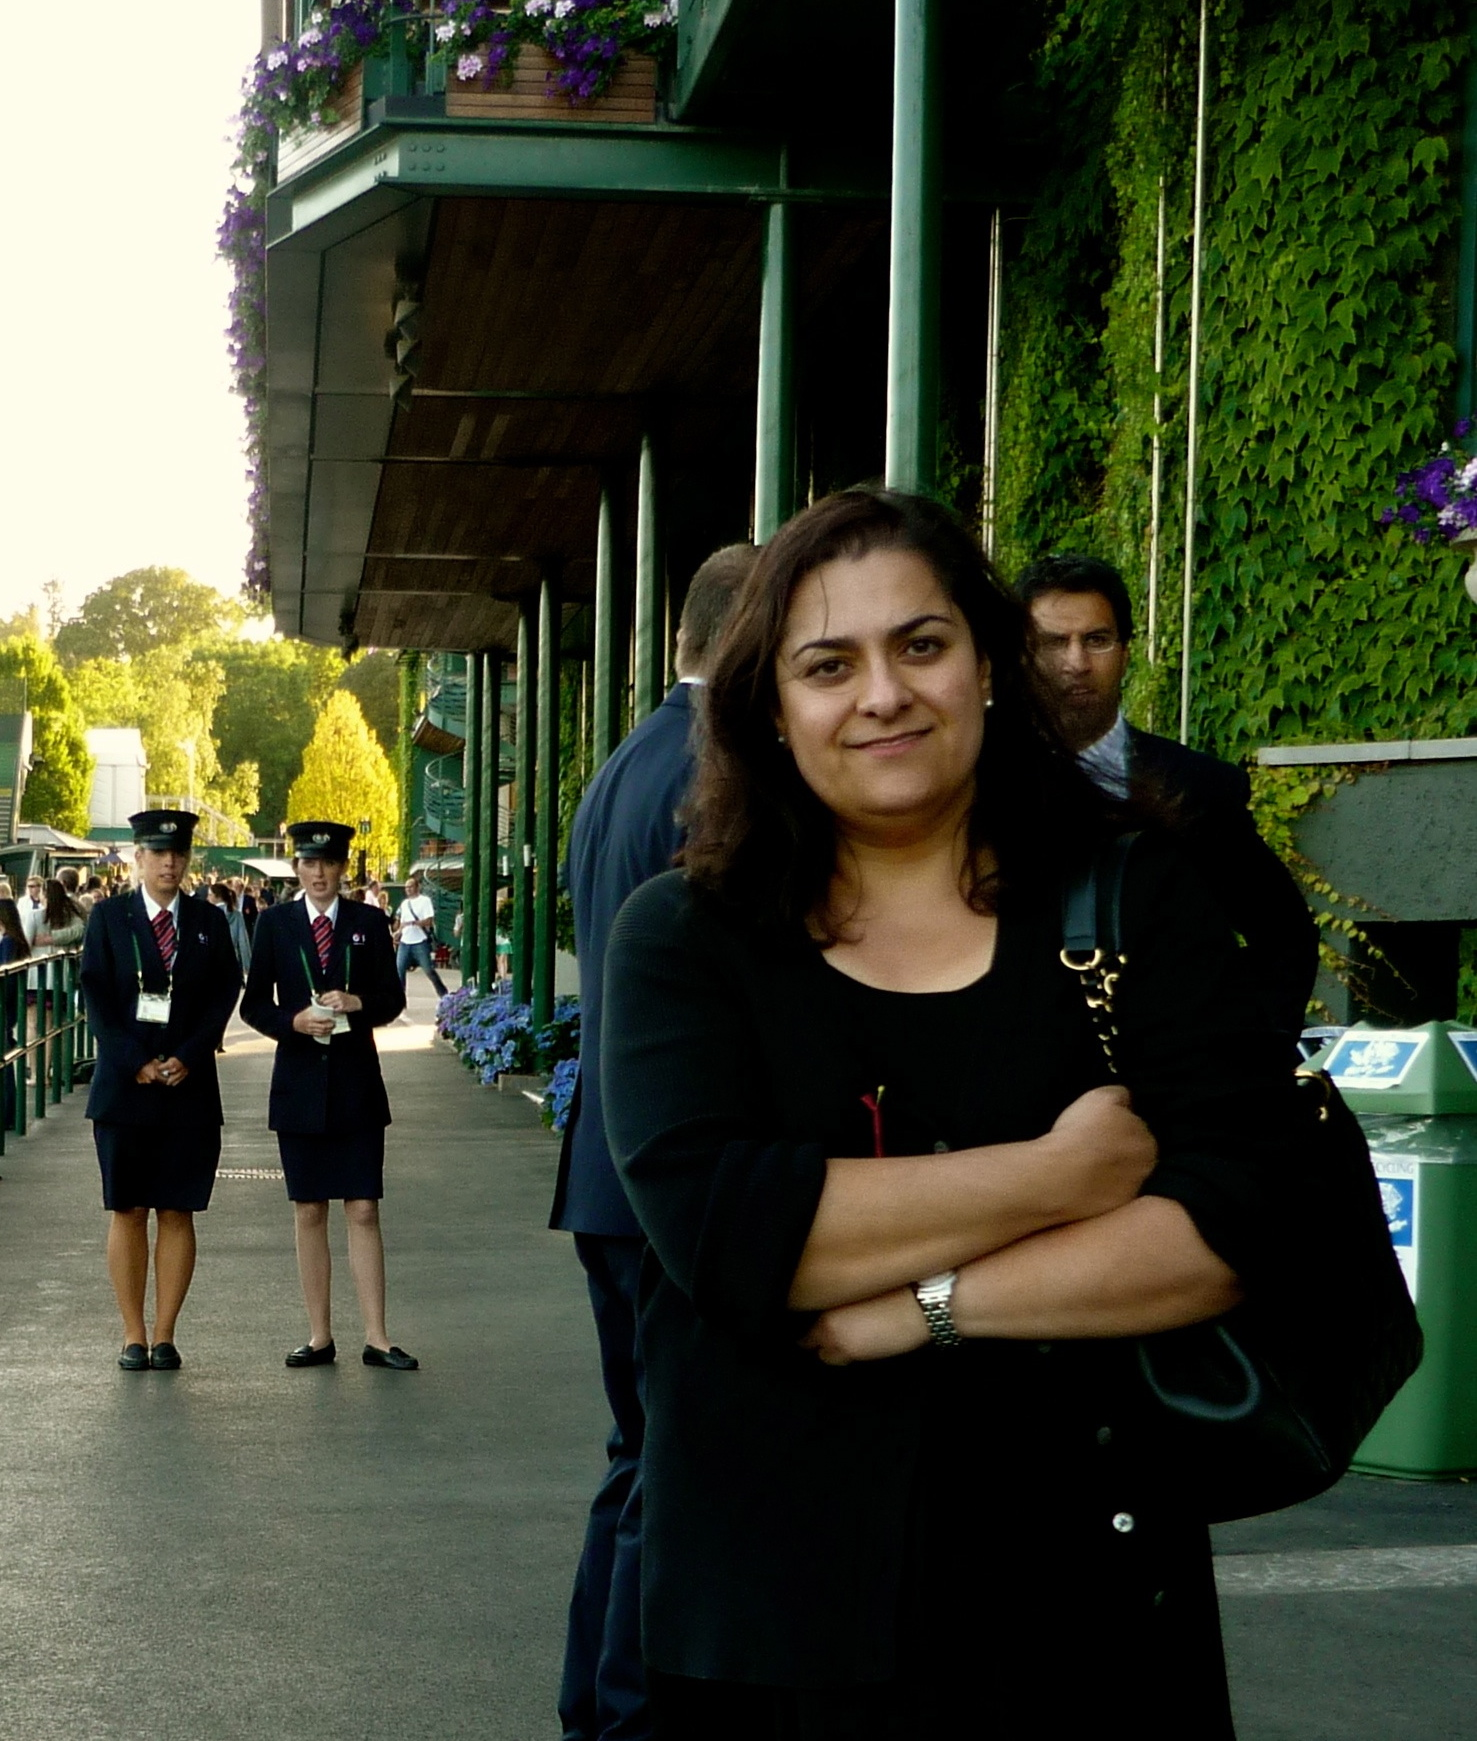 Protima at Wimbledon under the watchful eye of event staff.